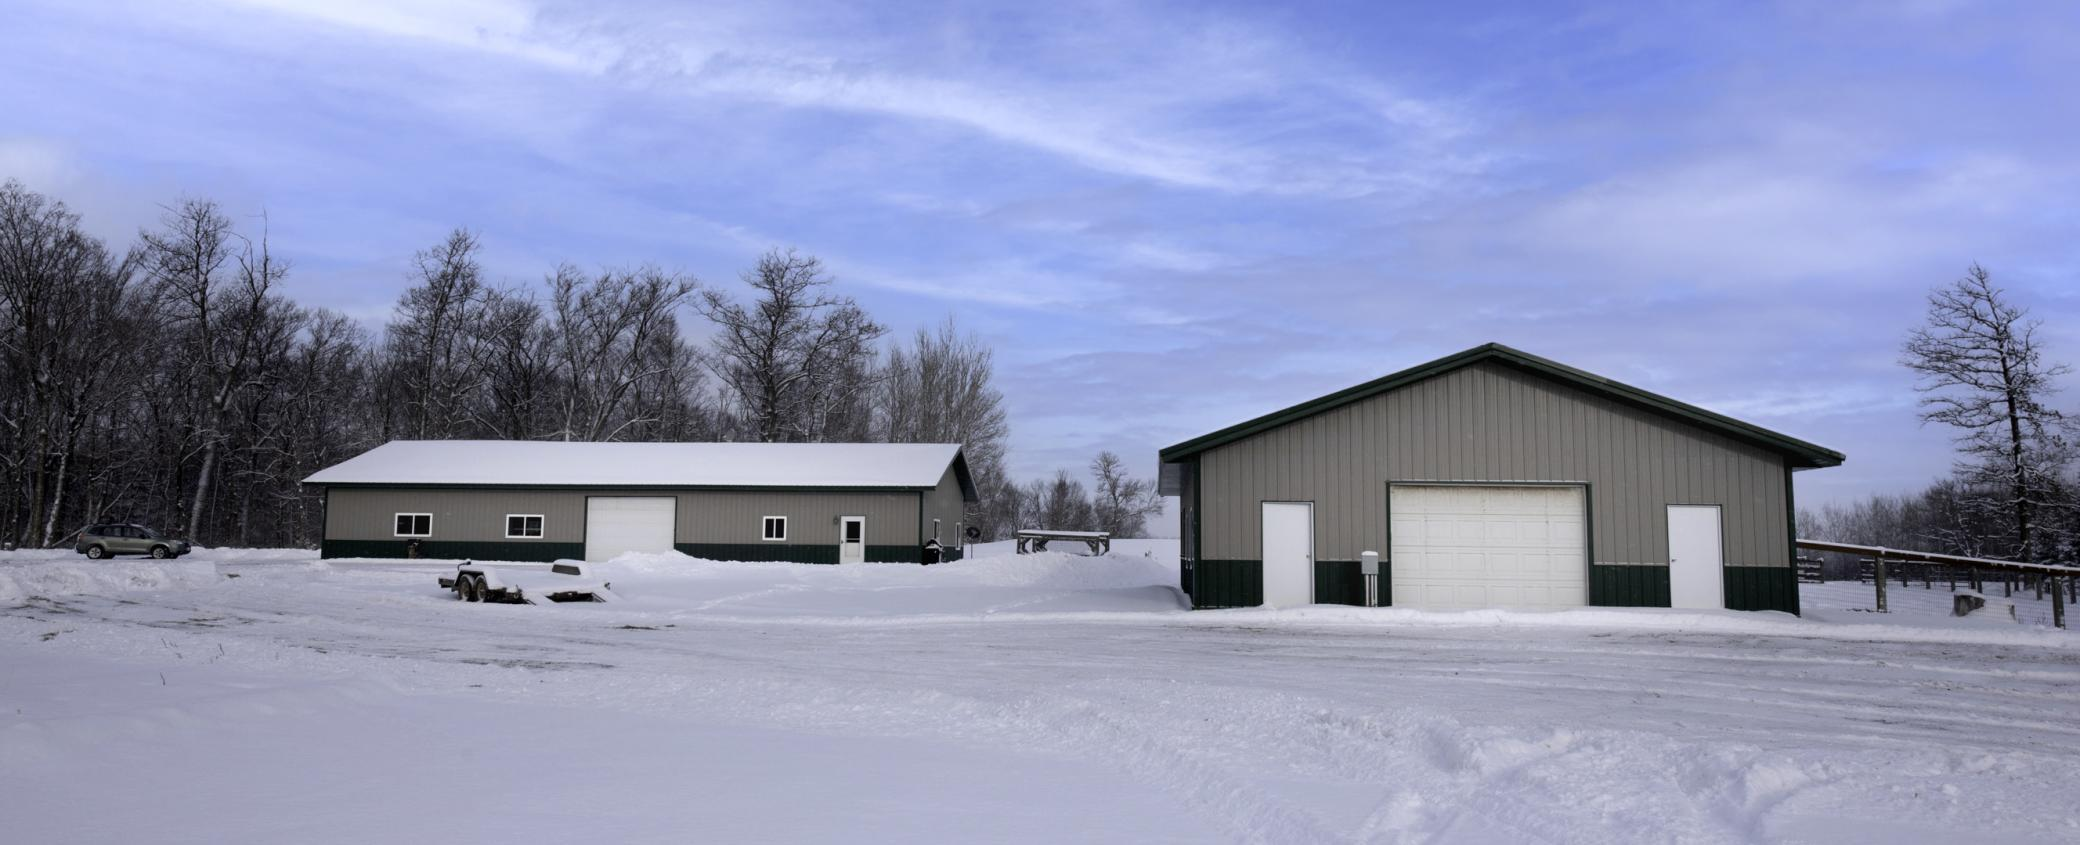 35574 350th Avenue Property Photo - Aitkin, MN real estate listing